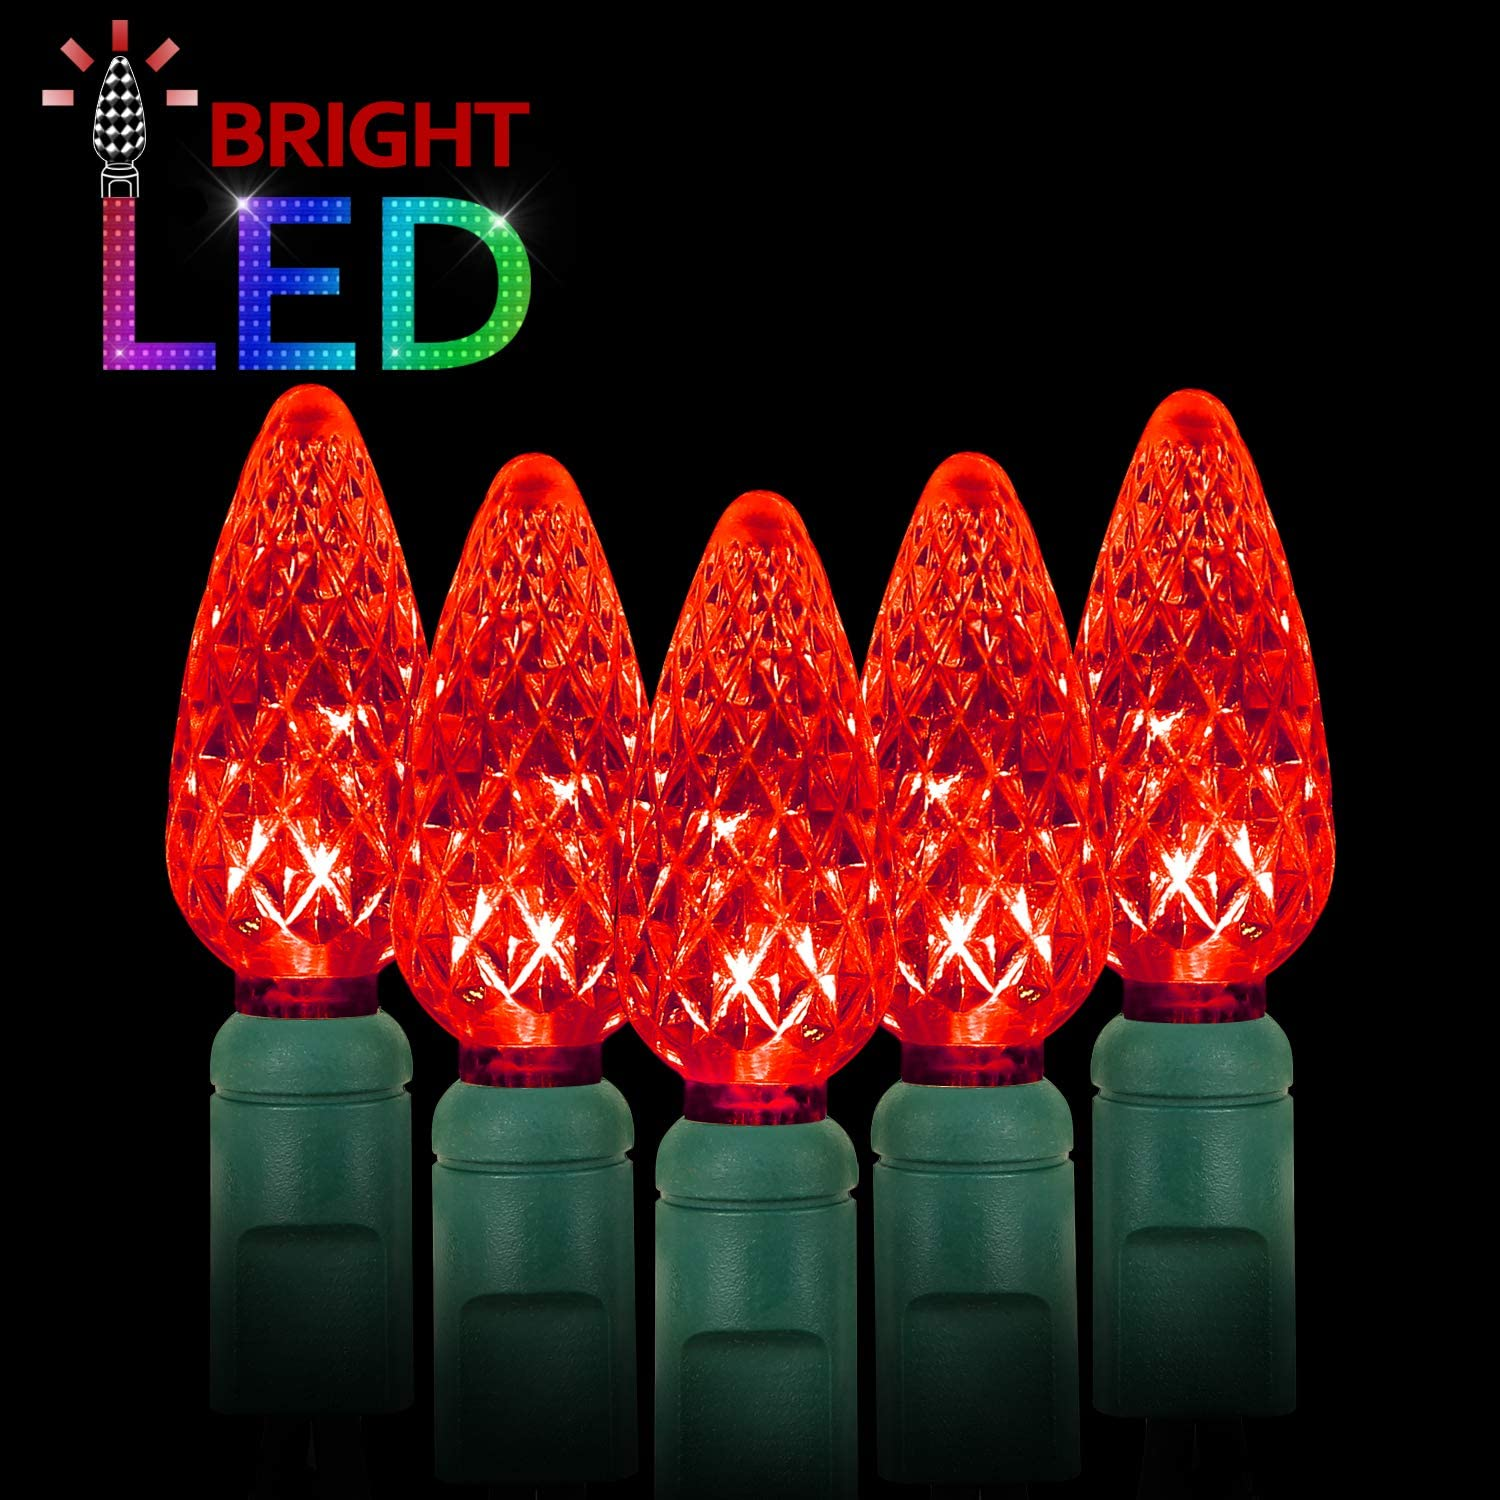 LED Christmas Lights 70 Counts C6, for Outdoor and Indoor, Red Light, Green Wire, 6in Spacing, 35.5ft, UL Listed